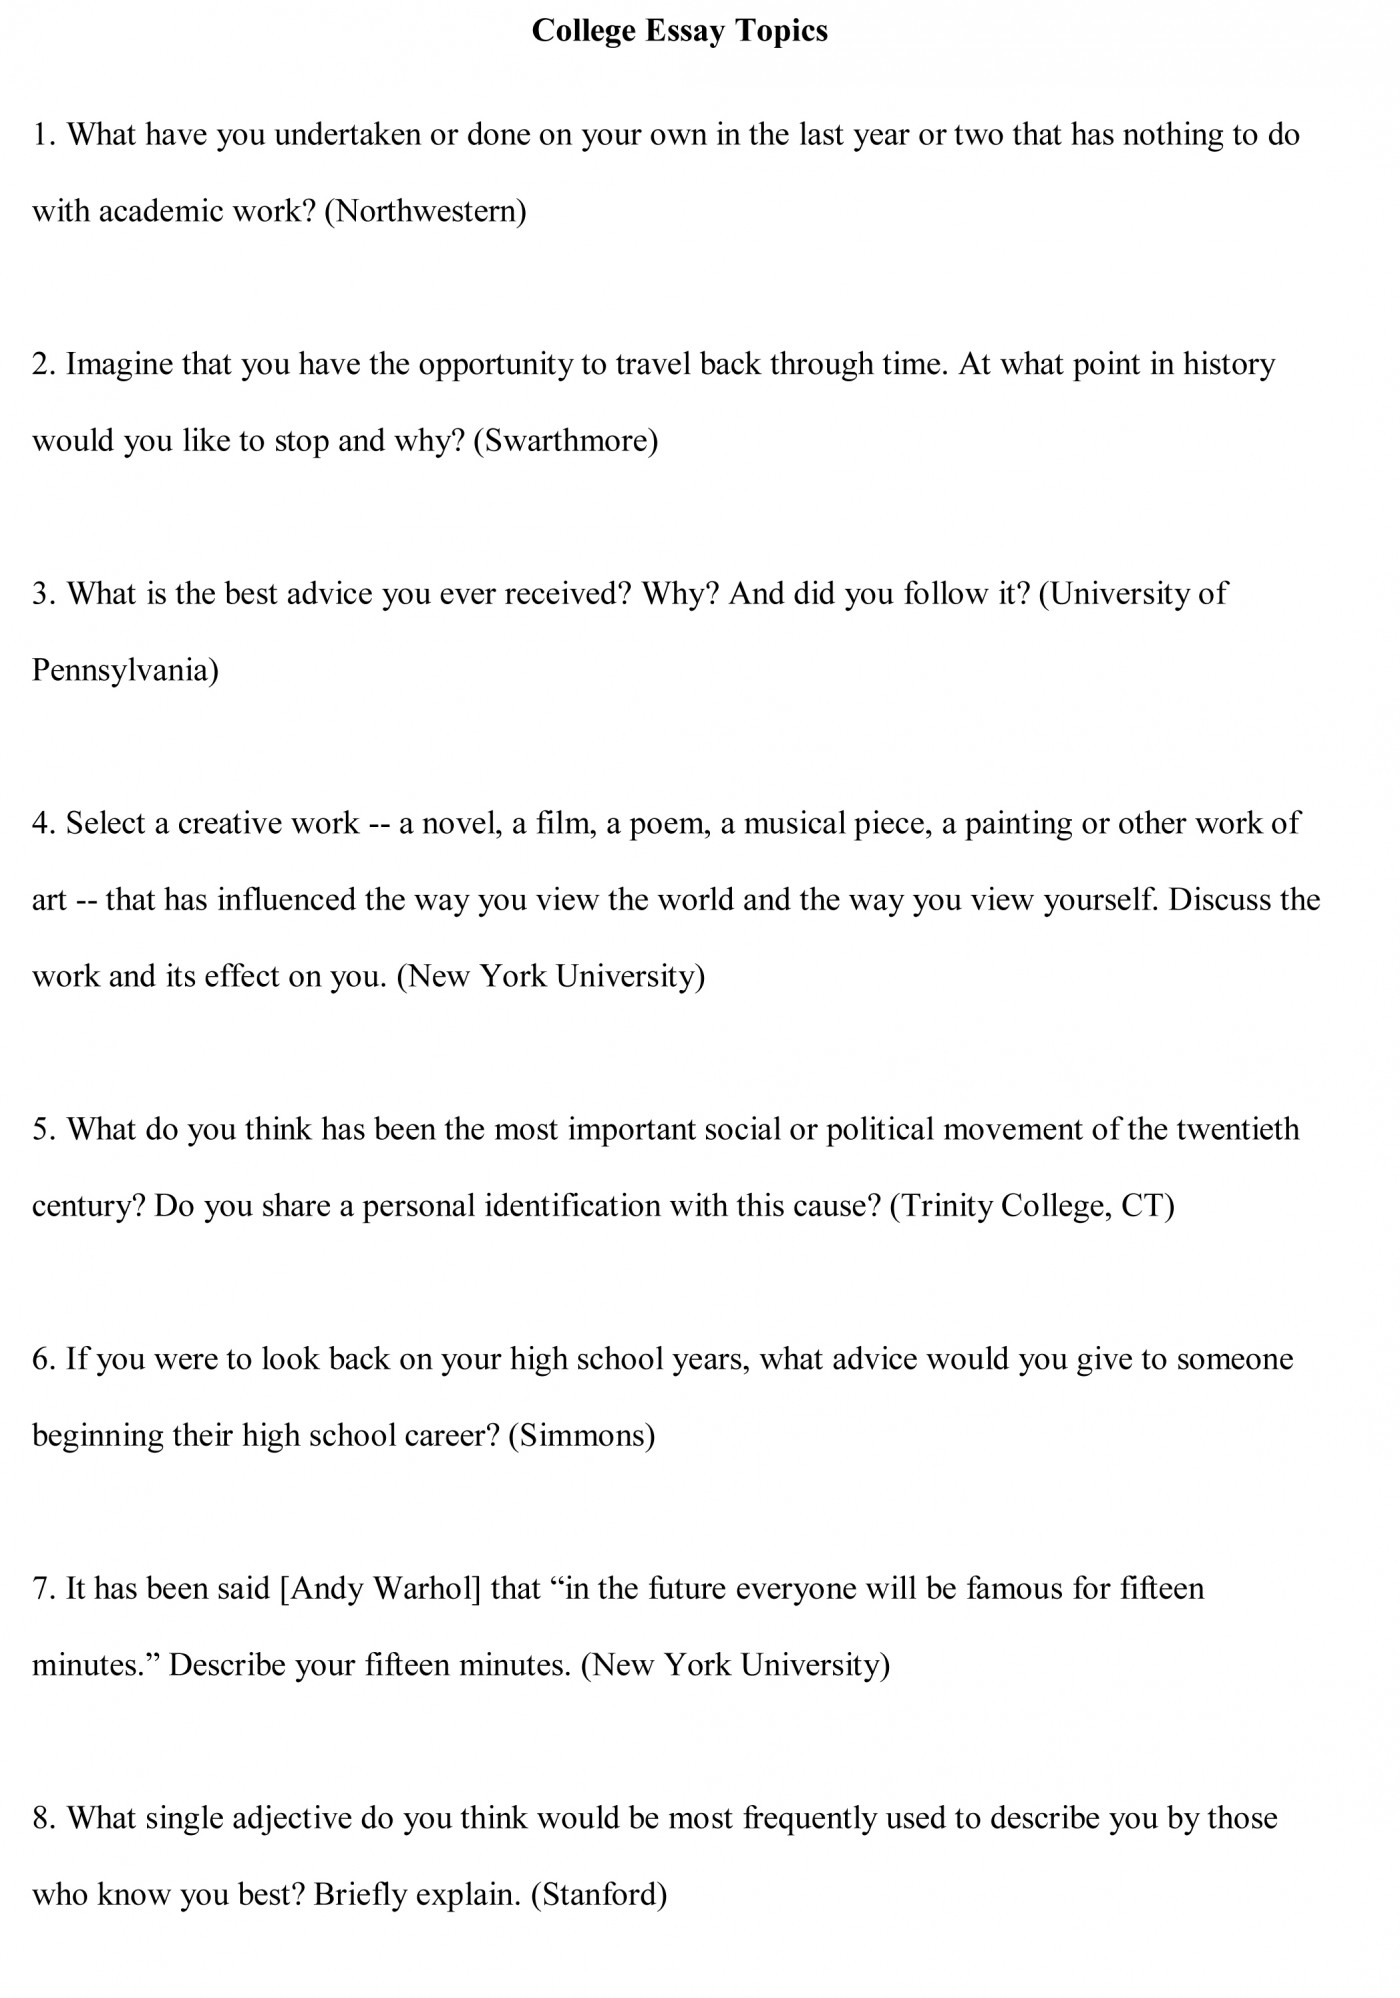 007 College Essay Topics Free Sample1 Good Best For Middle School Argumentative The Great Gatsby Persuasive 8th Graders 1400